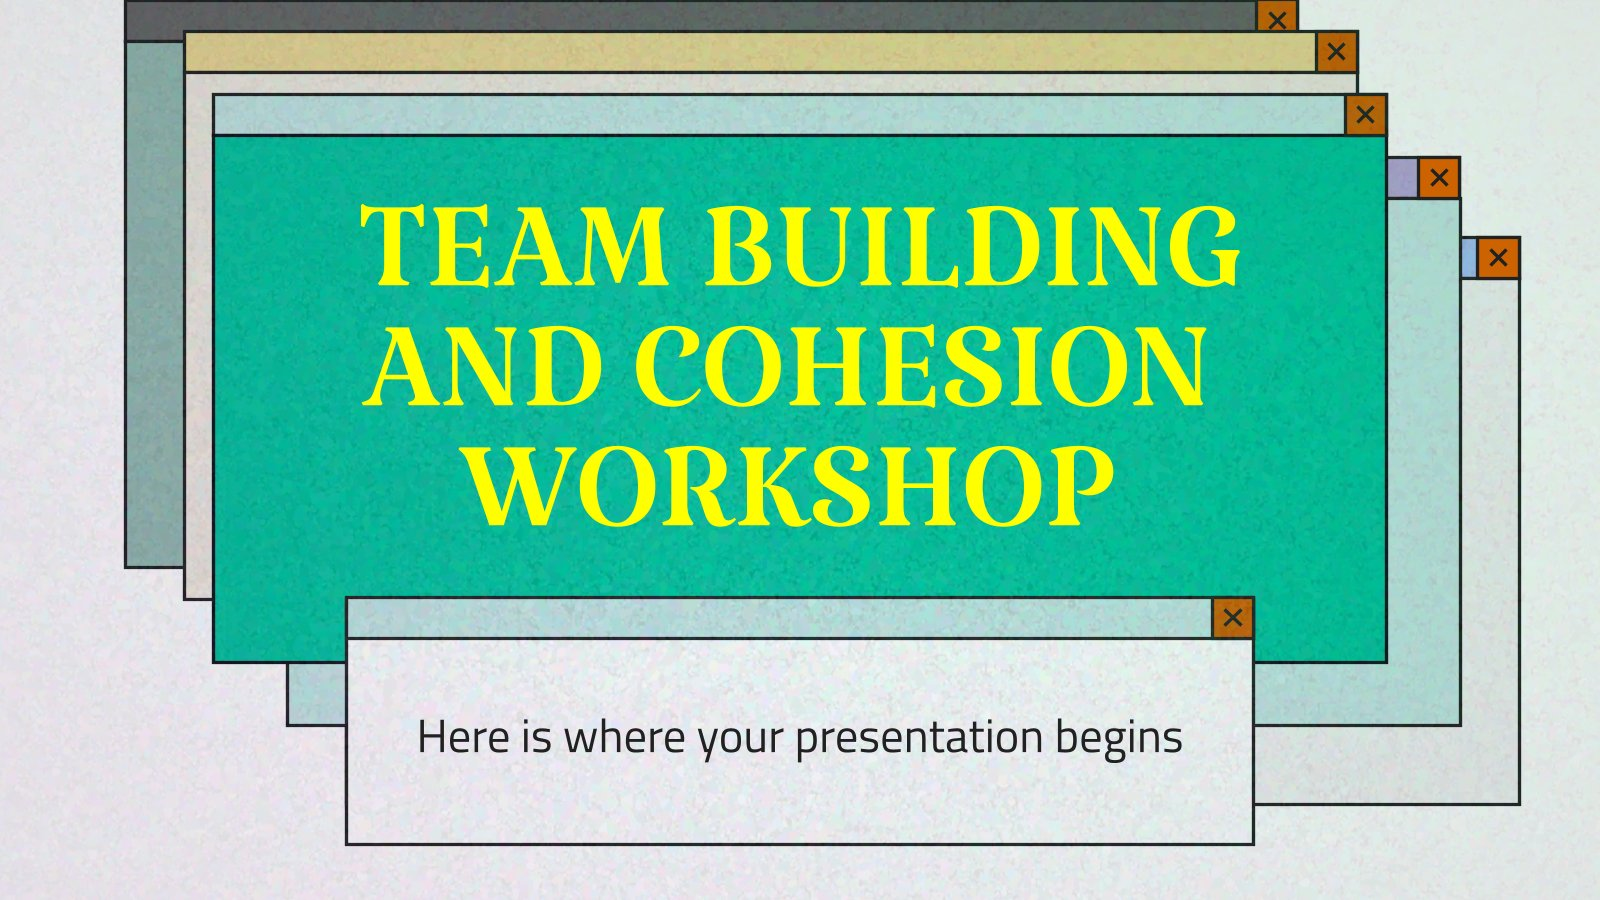 Team Building and Cohesion Workshop presentation template